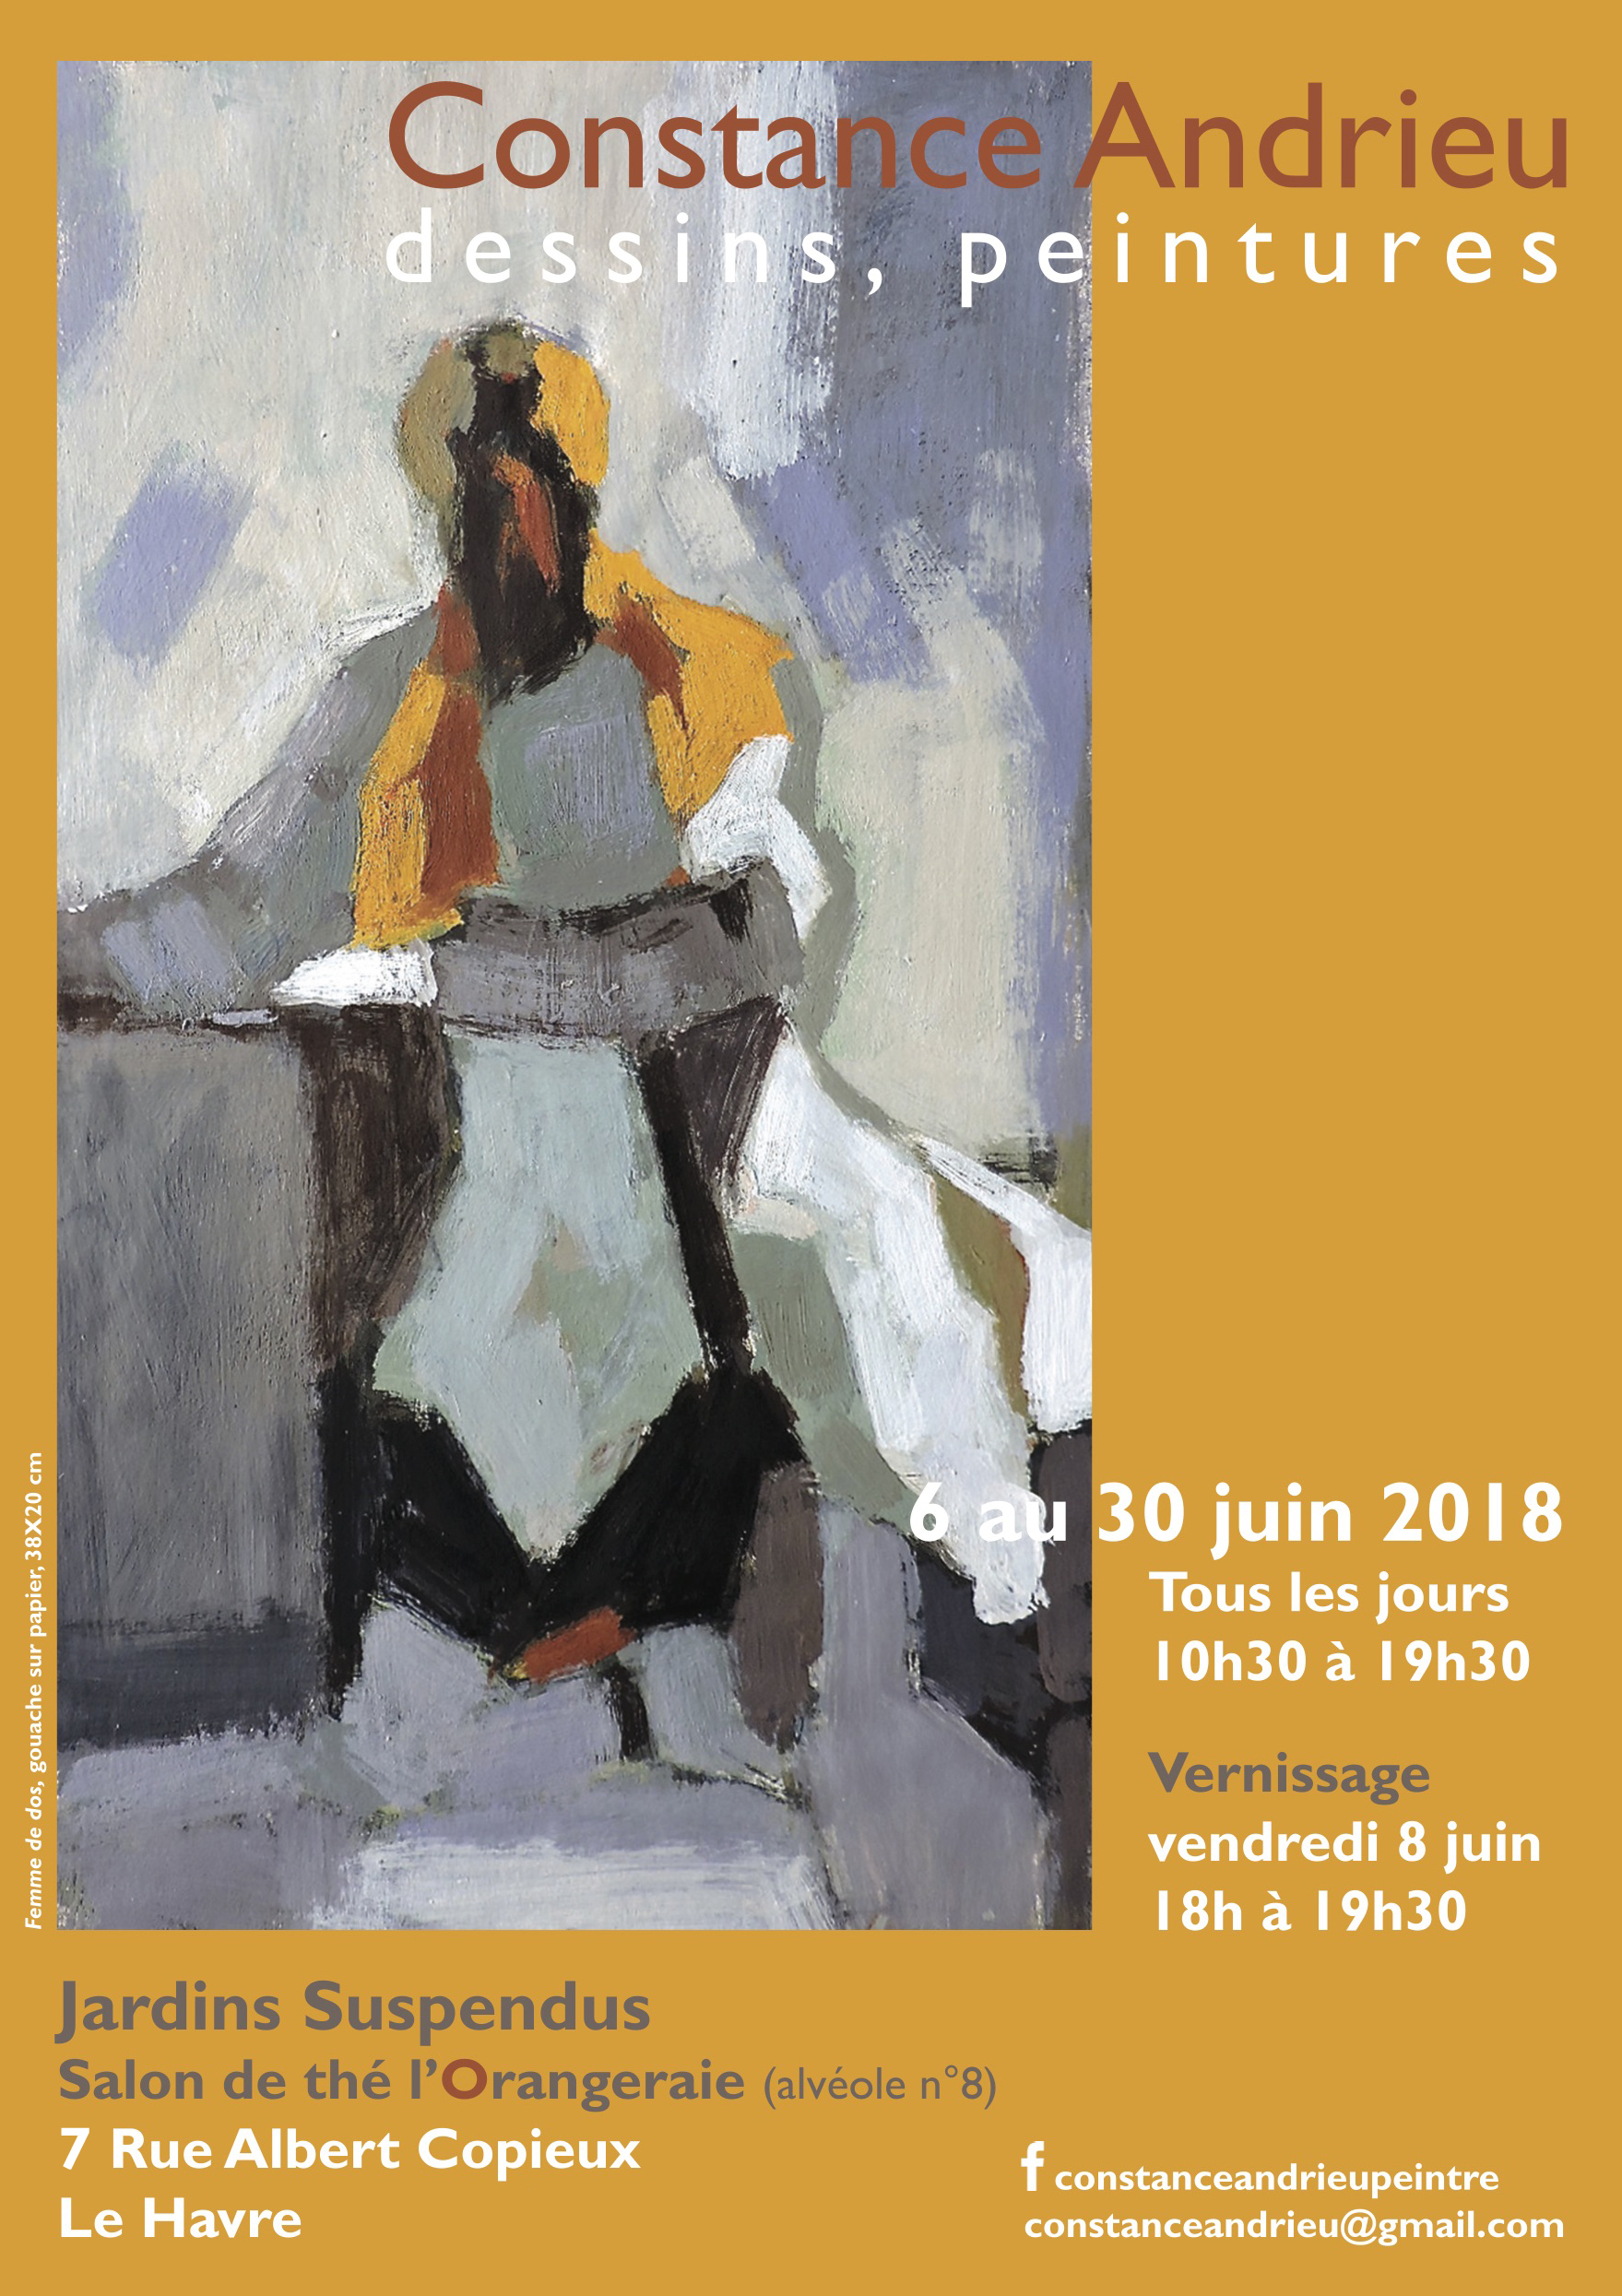 Exposition Le Havre juin 2018 - Constance Andrieu